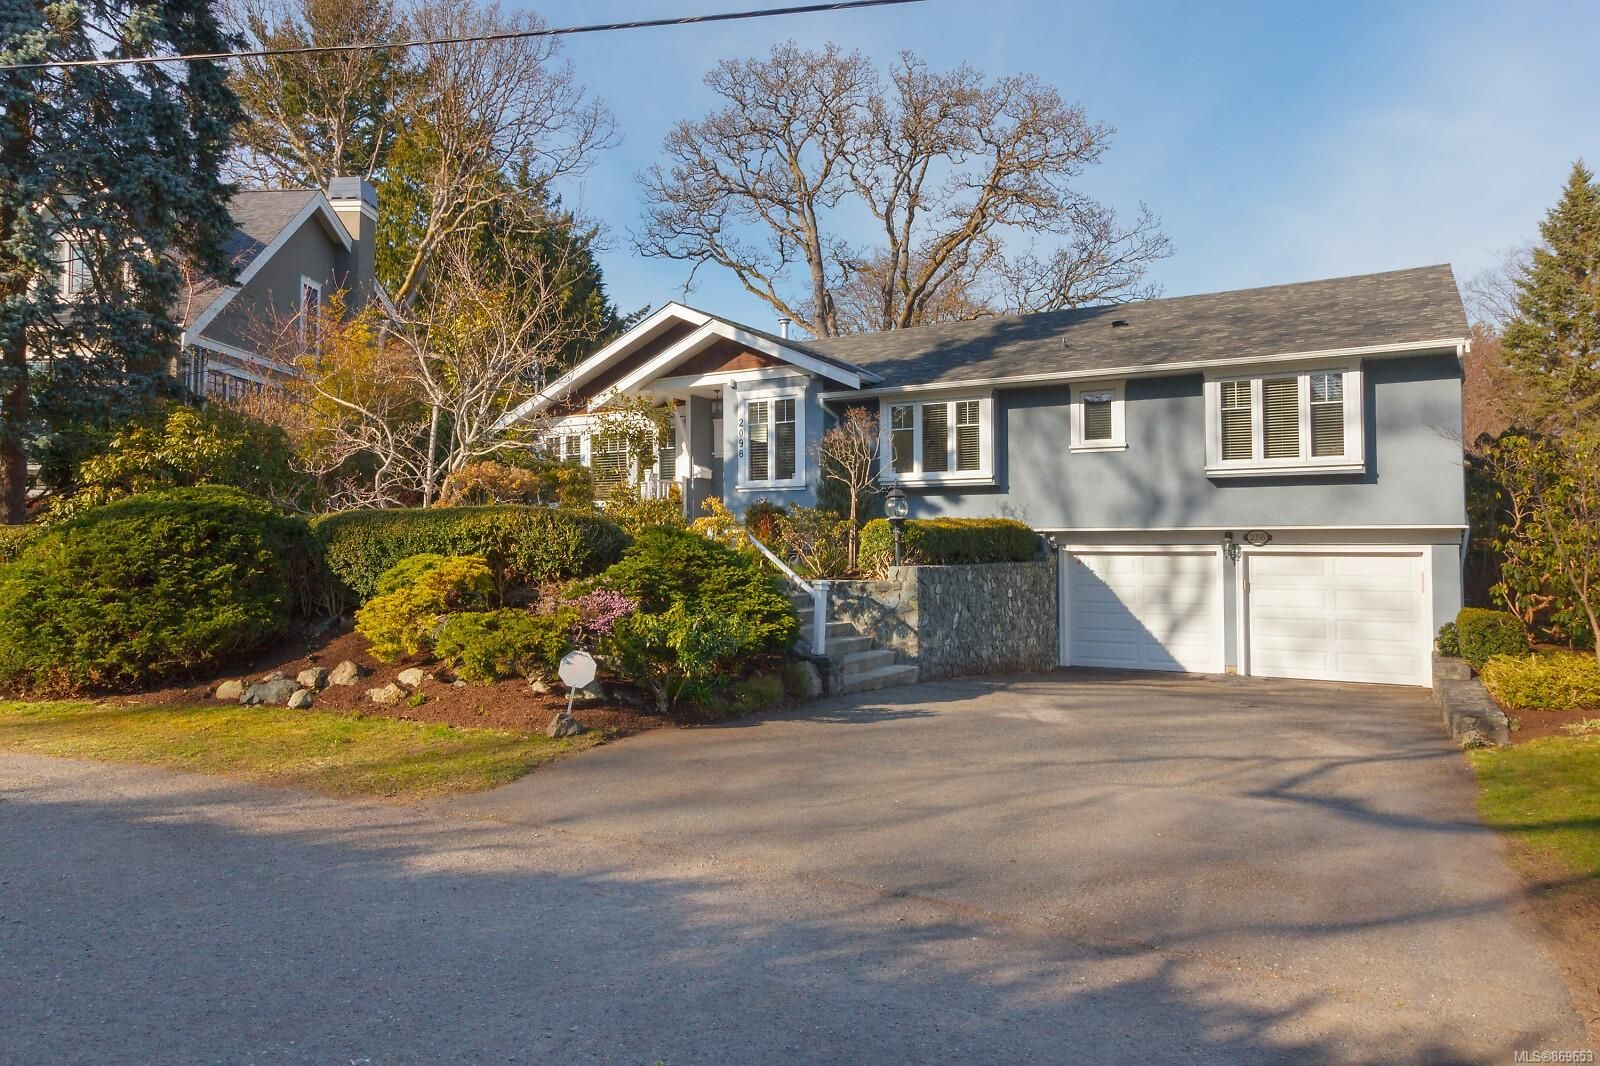 Main Photo: 2098 Falkland Pl in : OB South Oak Bay House for sale (Oak Bay)  : MLS®# 869653